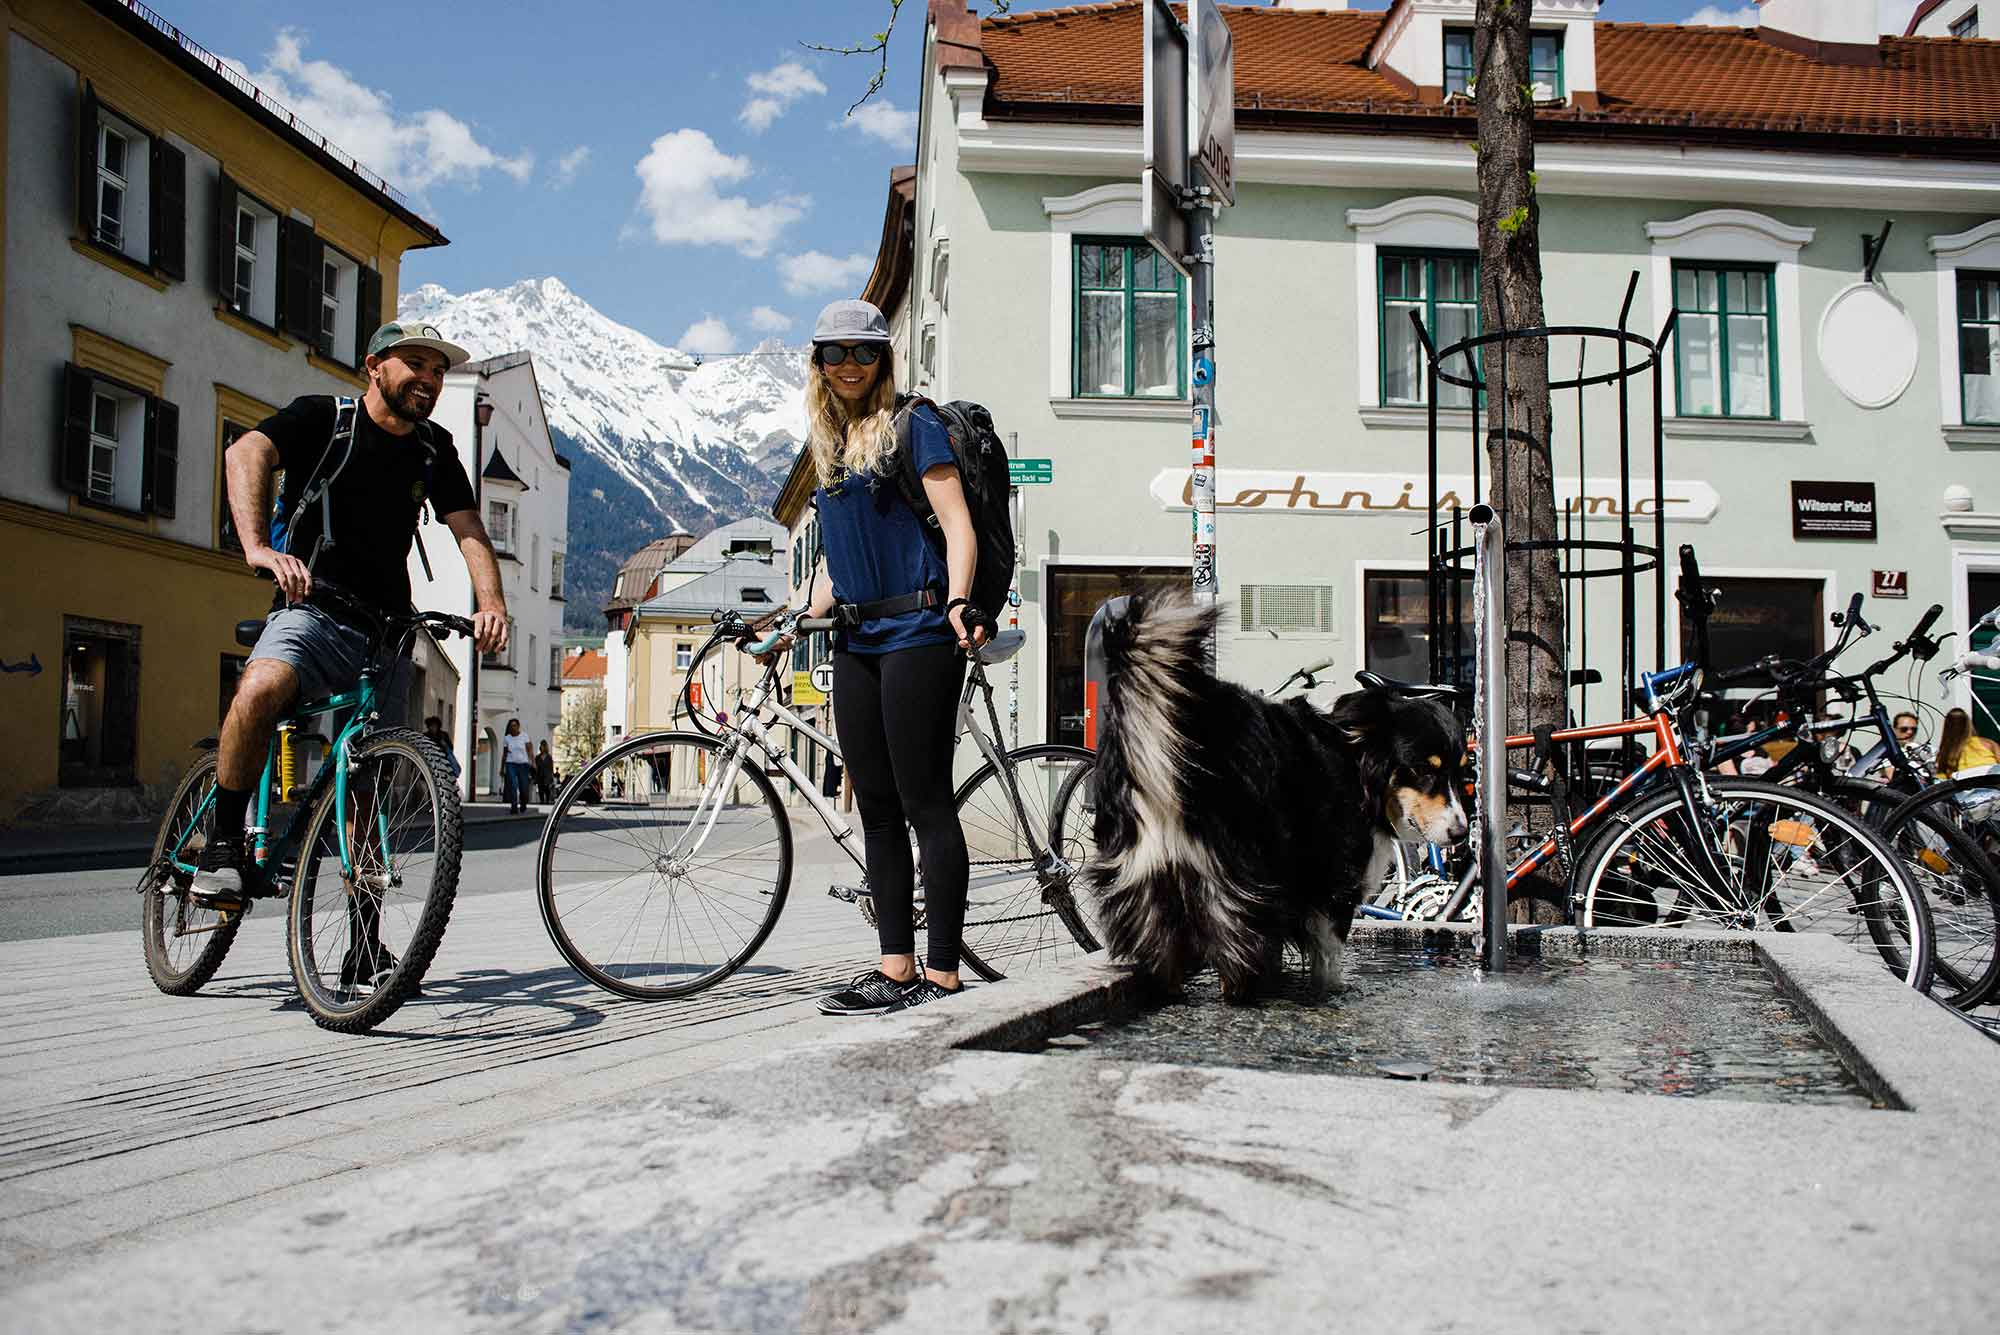 A man and woman walk a dog in Innsbruck, Austria